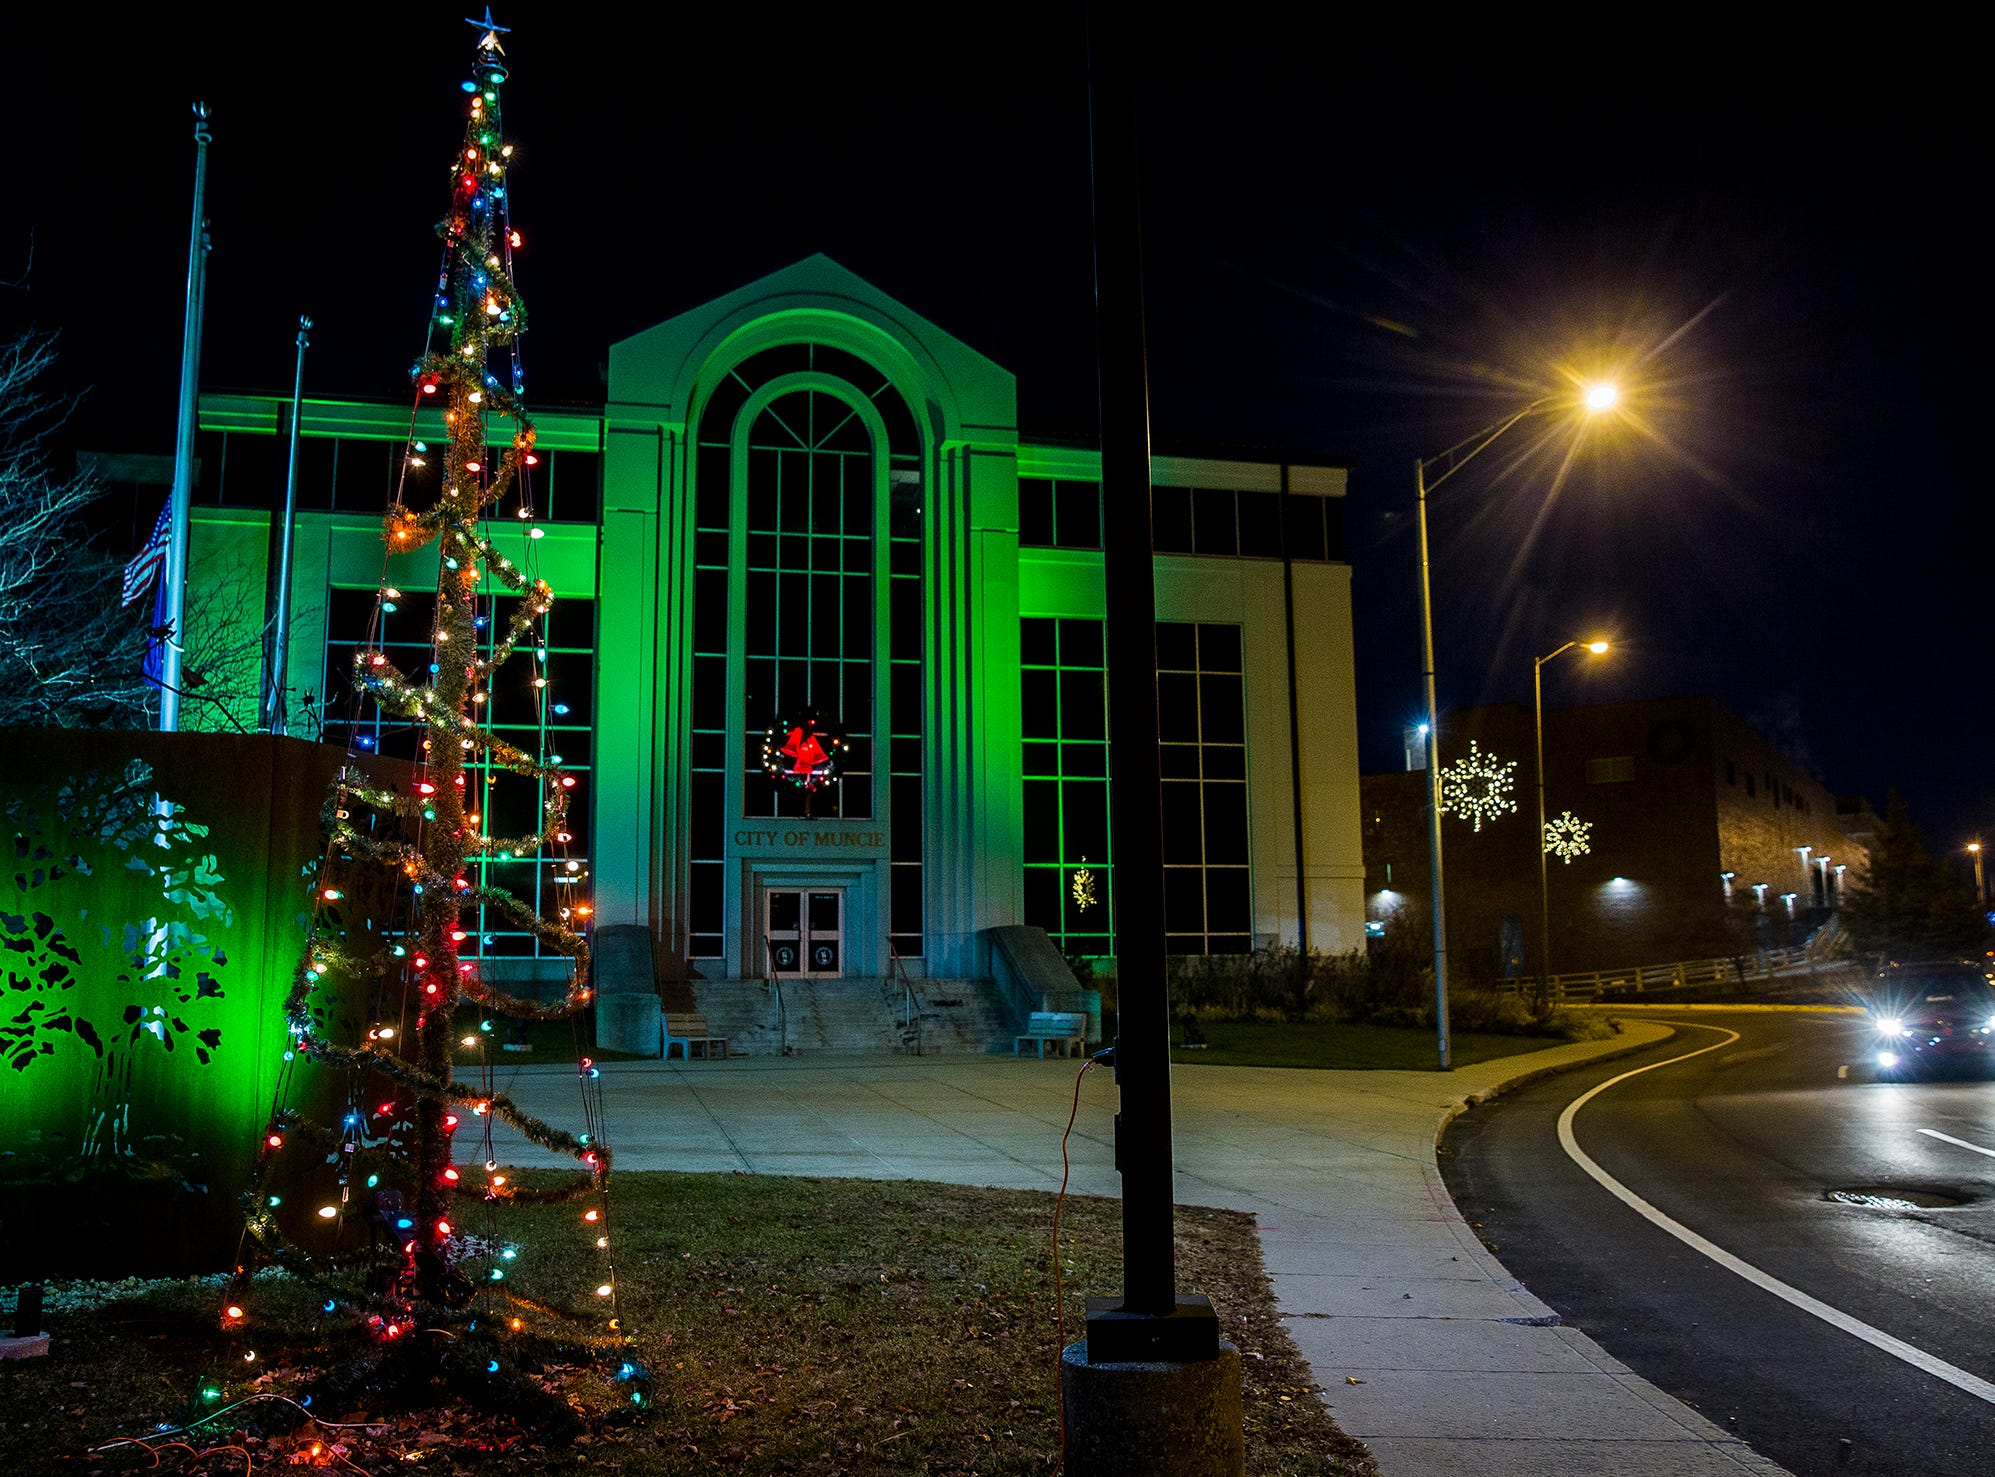 Muncie's City Hall decorated for Christmas.